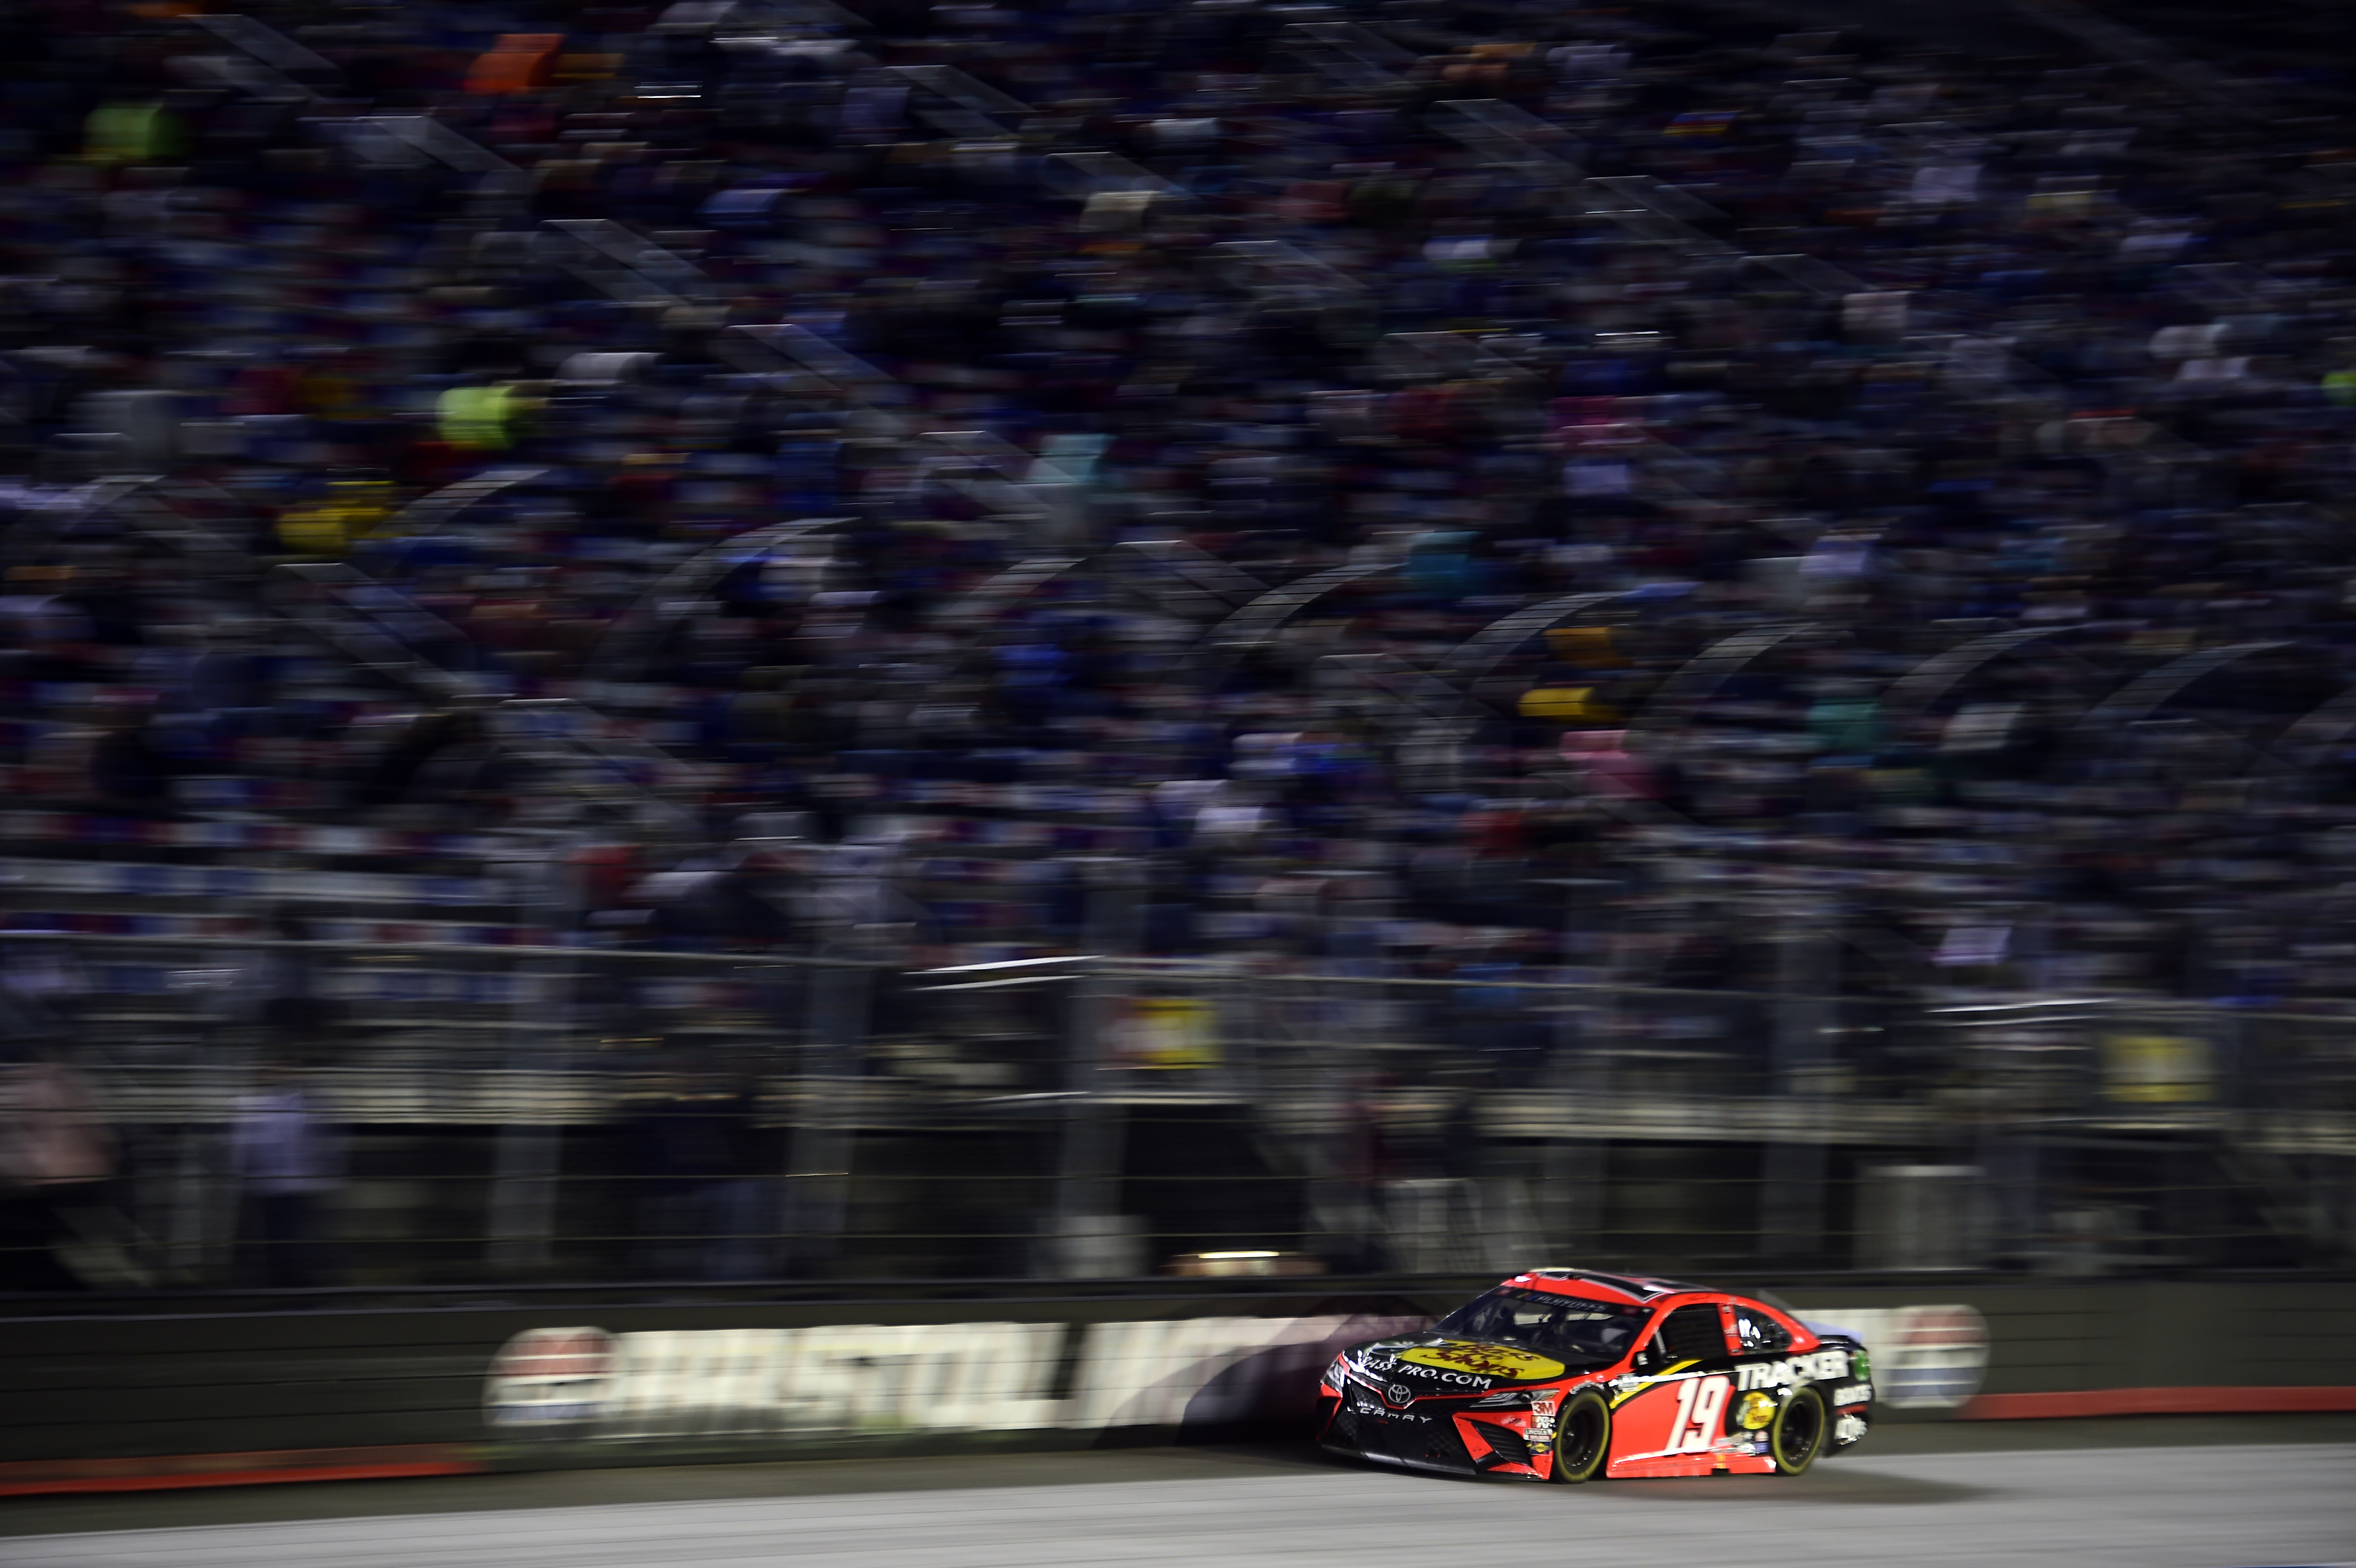 Martin Truex Jr., driver of the #19 Bass Pro Shops Toyota, races during the NASCAR Cup Series Bass Pro Shops Night Race at Bristol Motor Speedway on September 19, 2020 in Bristol, Tennessee.